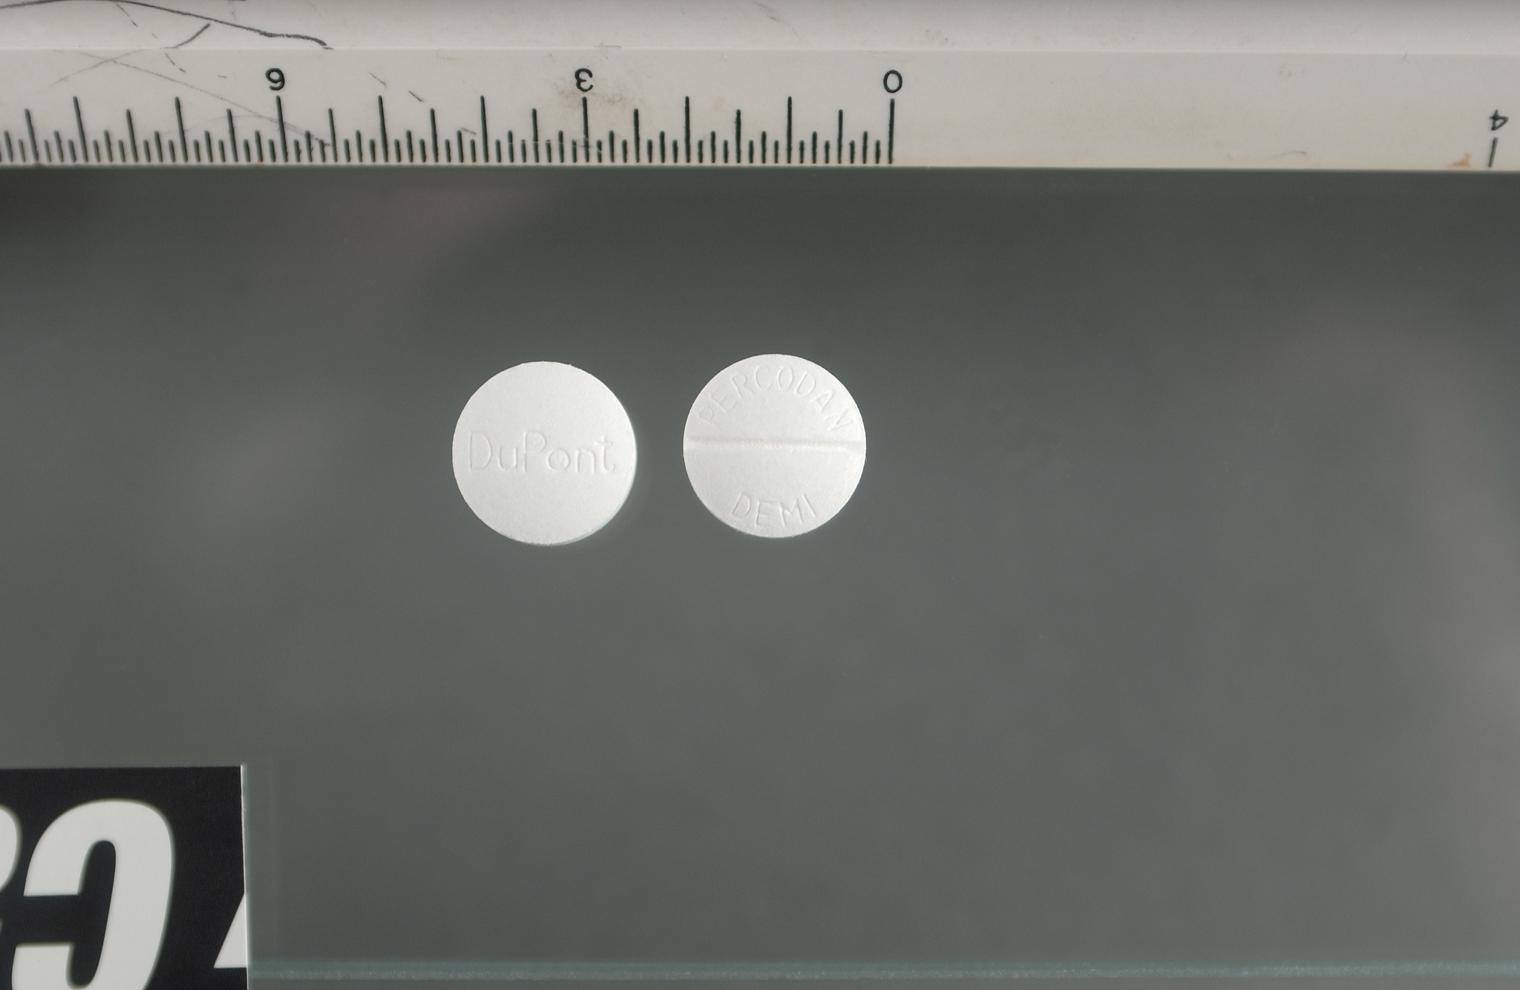 Percodan 2.25mg